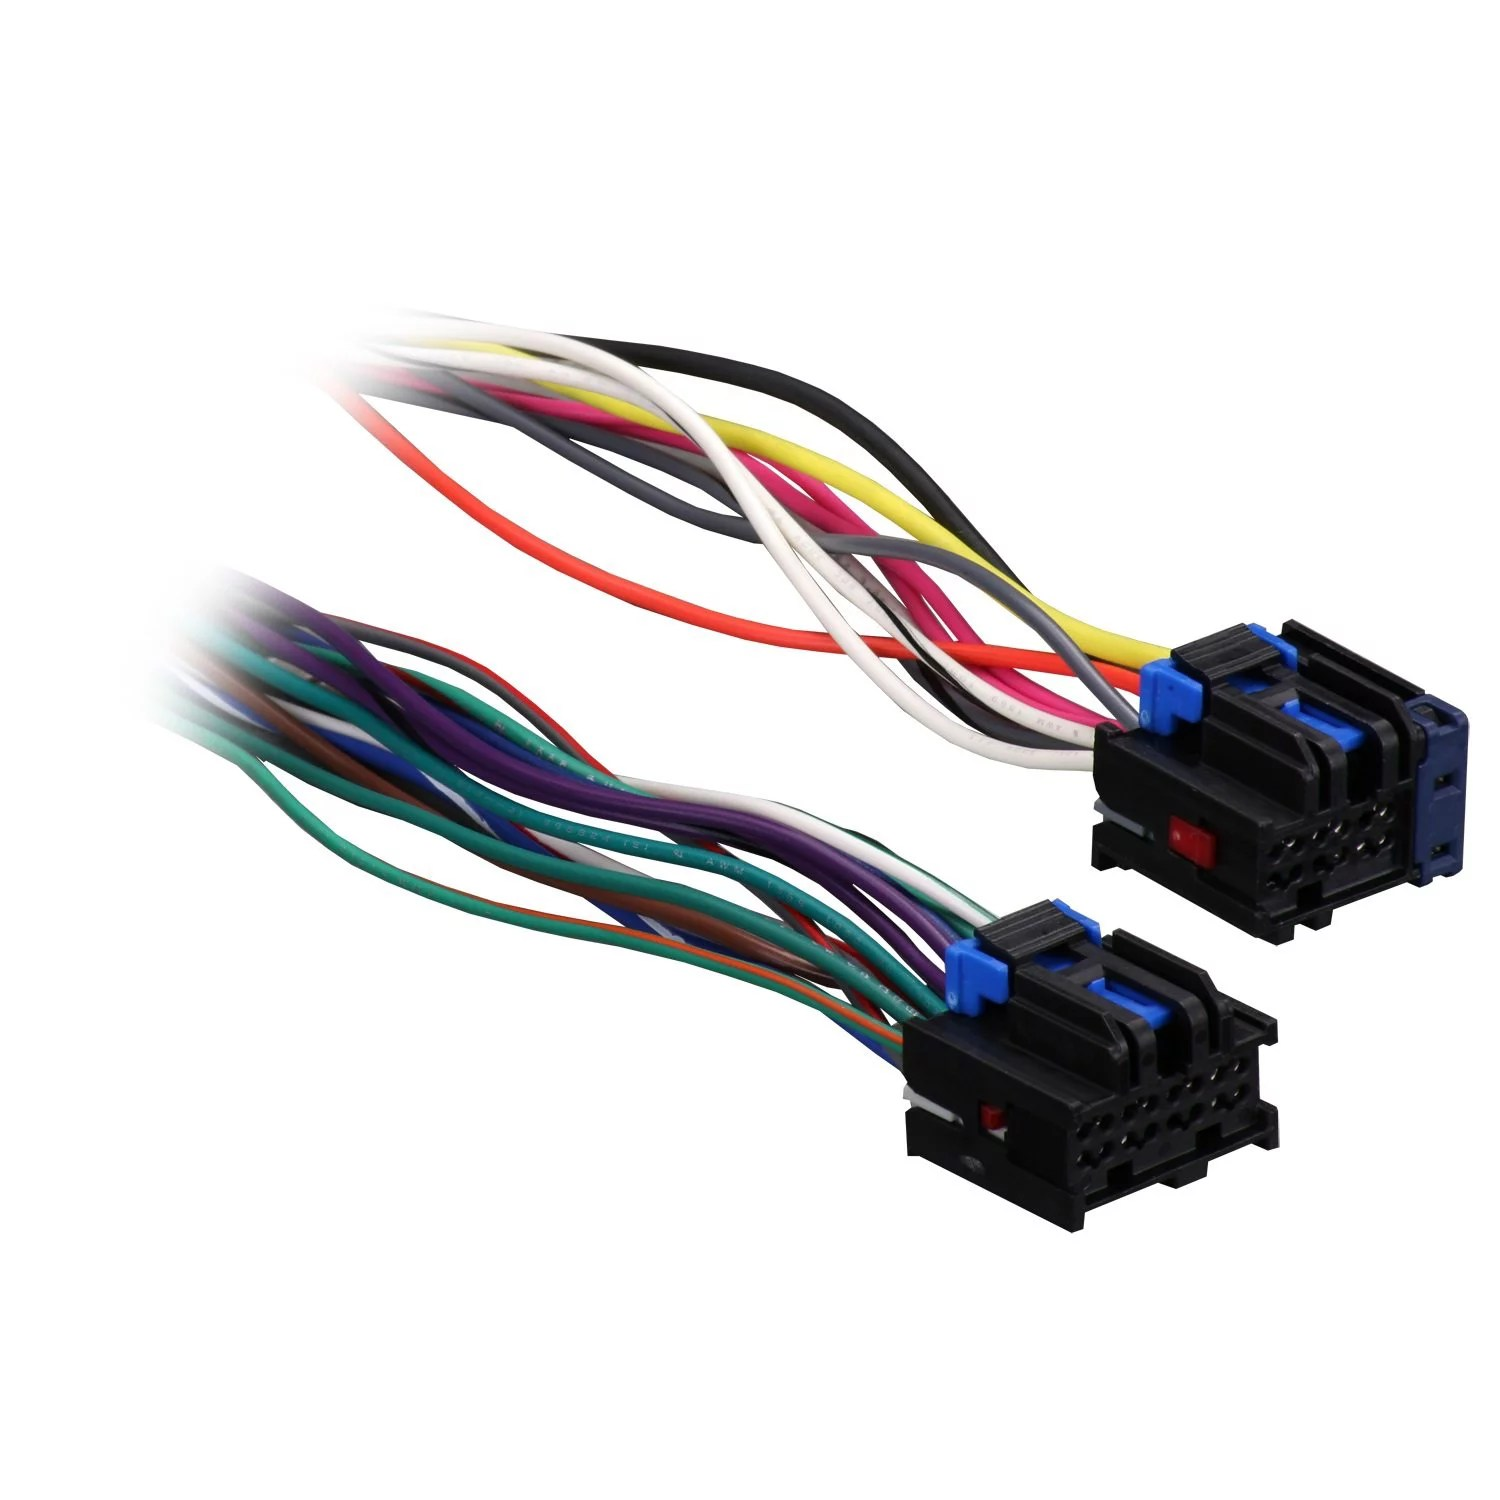 hight resolution of jvc kd r300 wiring harness adapter today wiring diagram update jvc kd r300 wiring diagram jvc kd r300 wiring harness